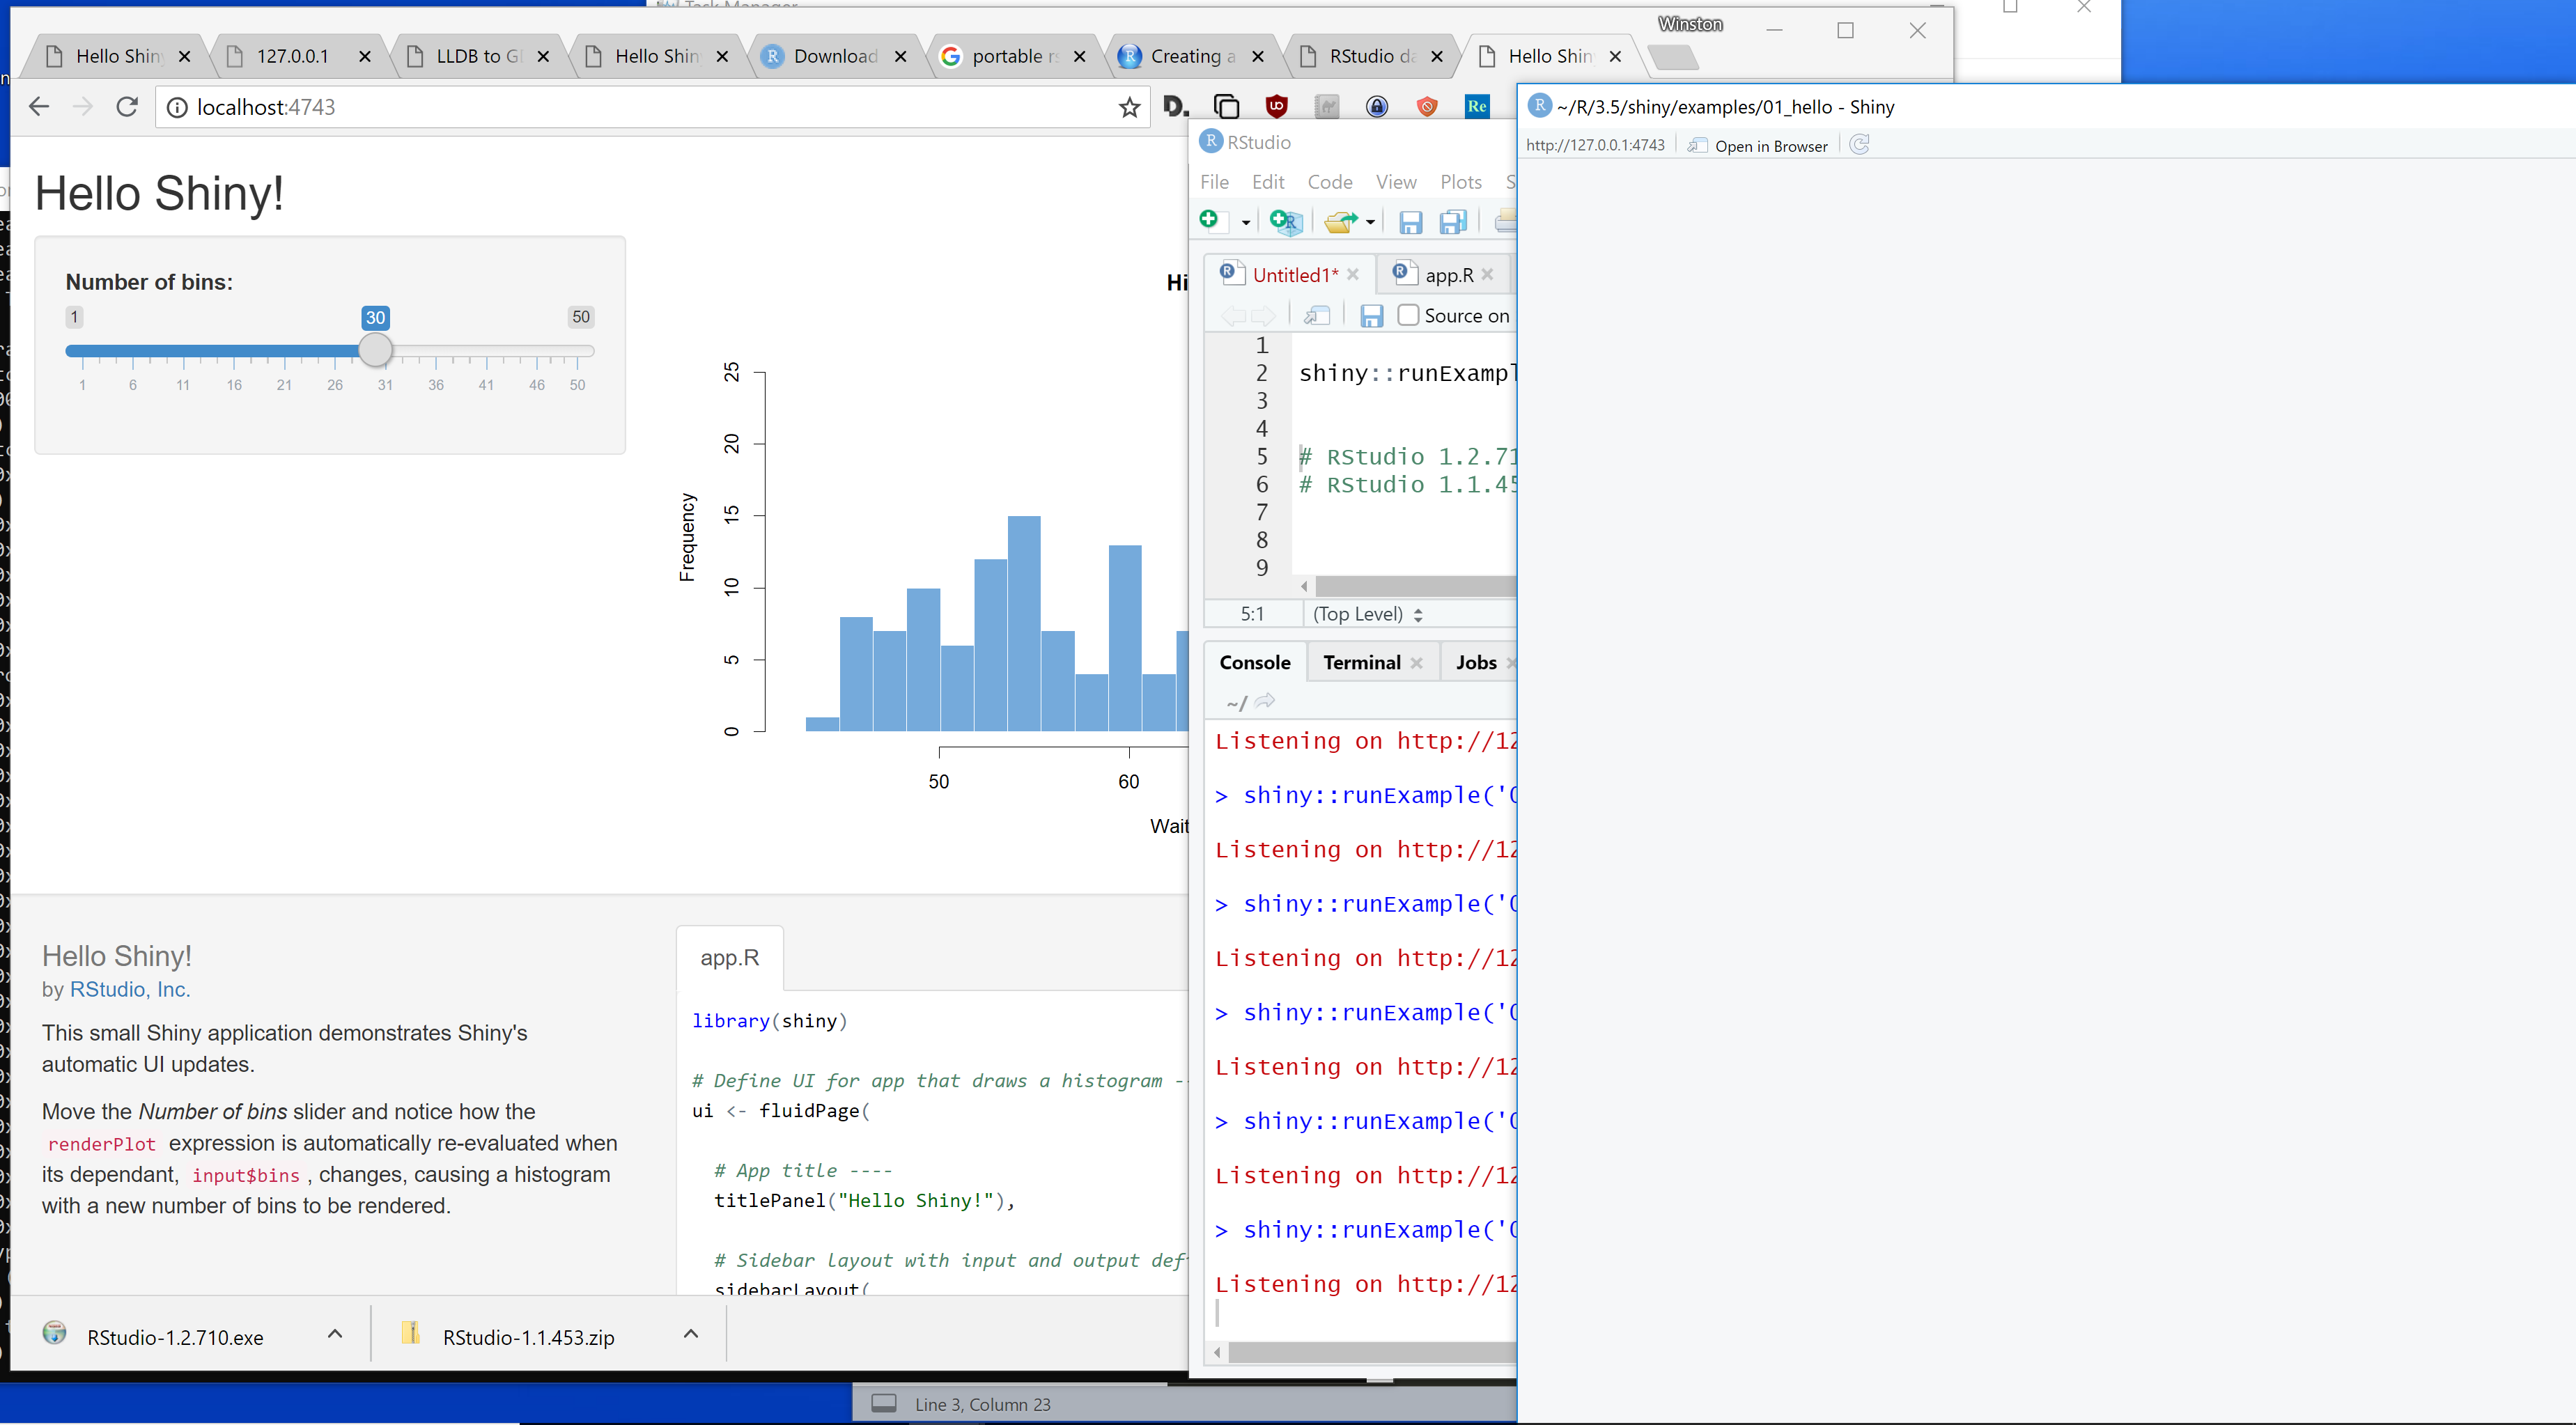 RStudio freezes in Windows after running Shiny app over and